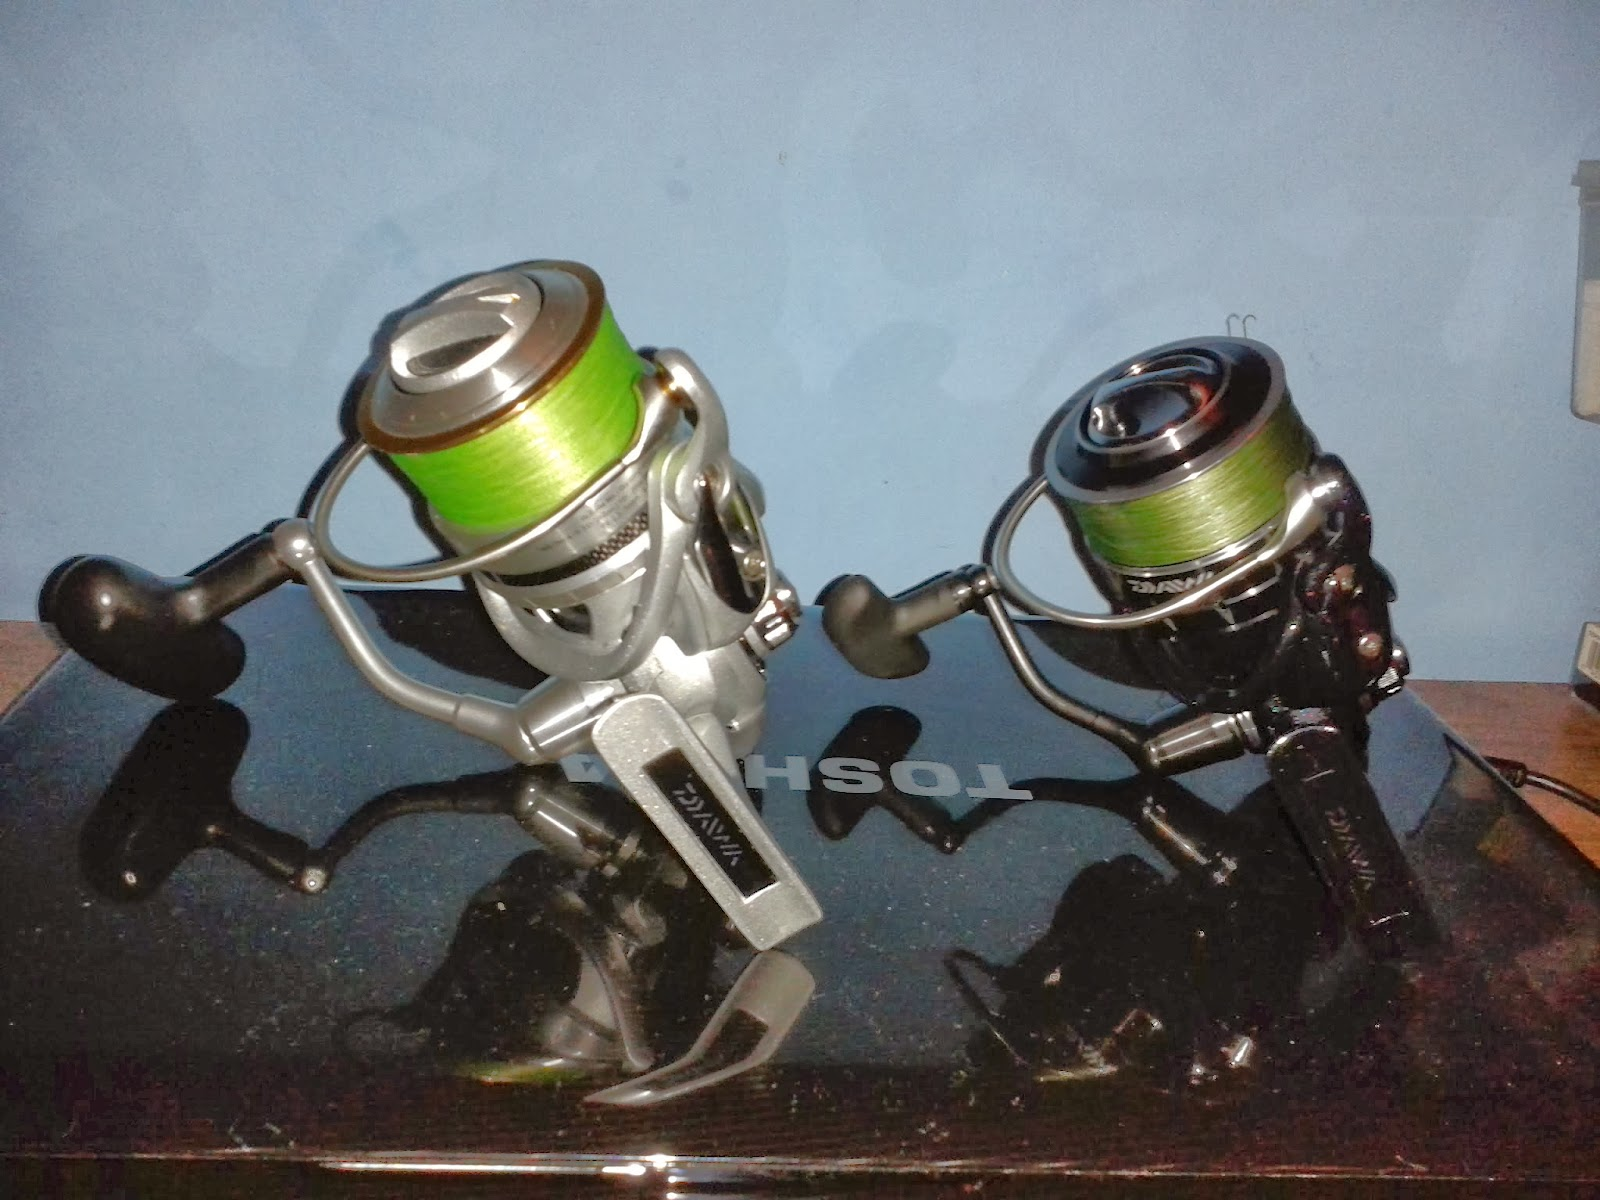 rickyvadepesca: DAIWA CALDIA 3000 SHA - photo#23